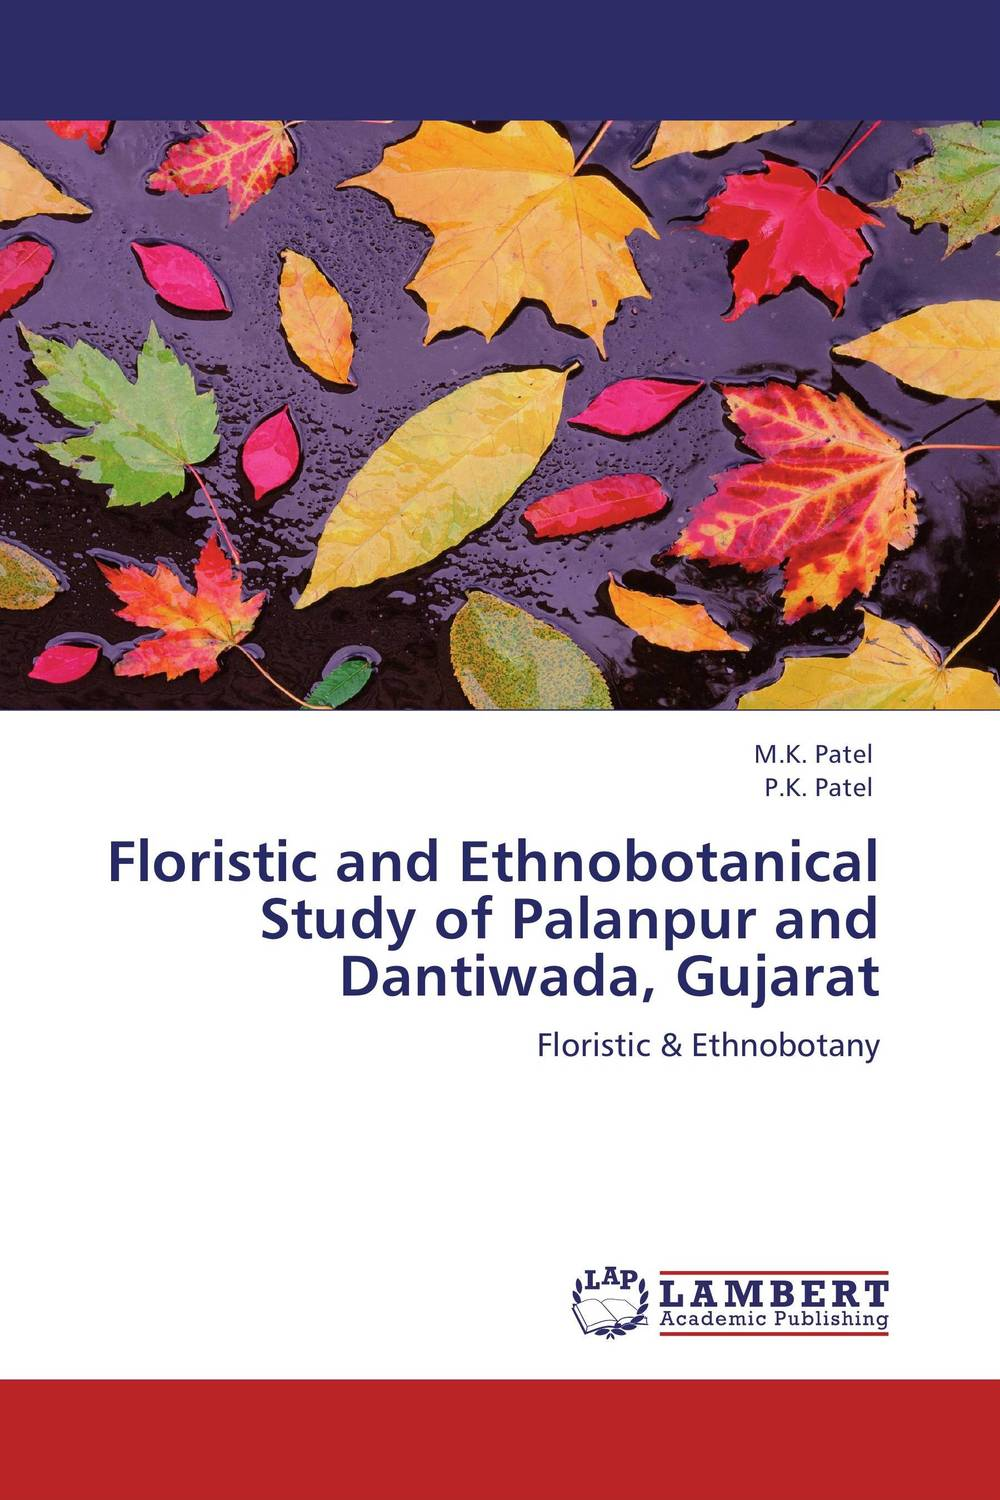 Floristic and Ethnobotanical Study of Palanpur and Dantiwada, Gujarat textiles and dress of gujarat